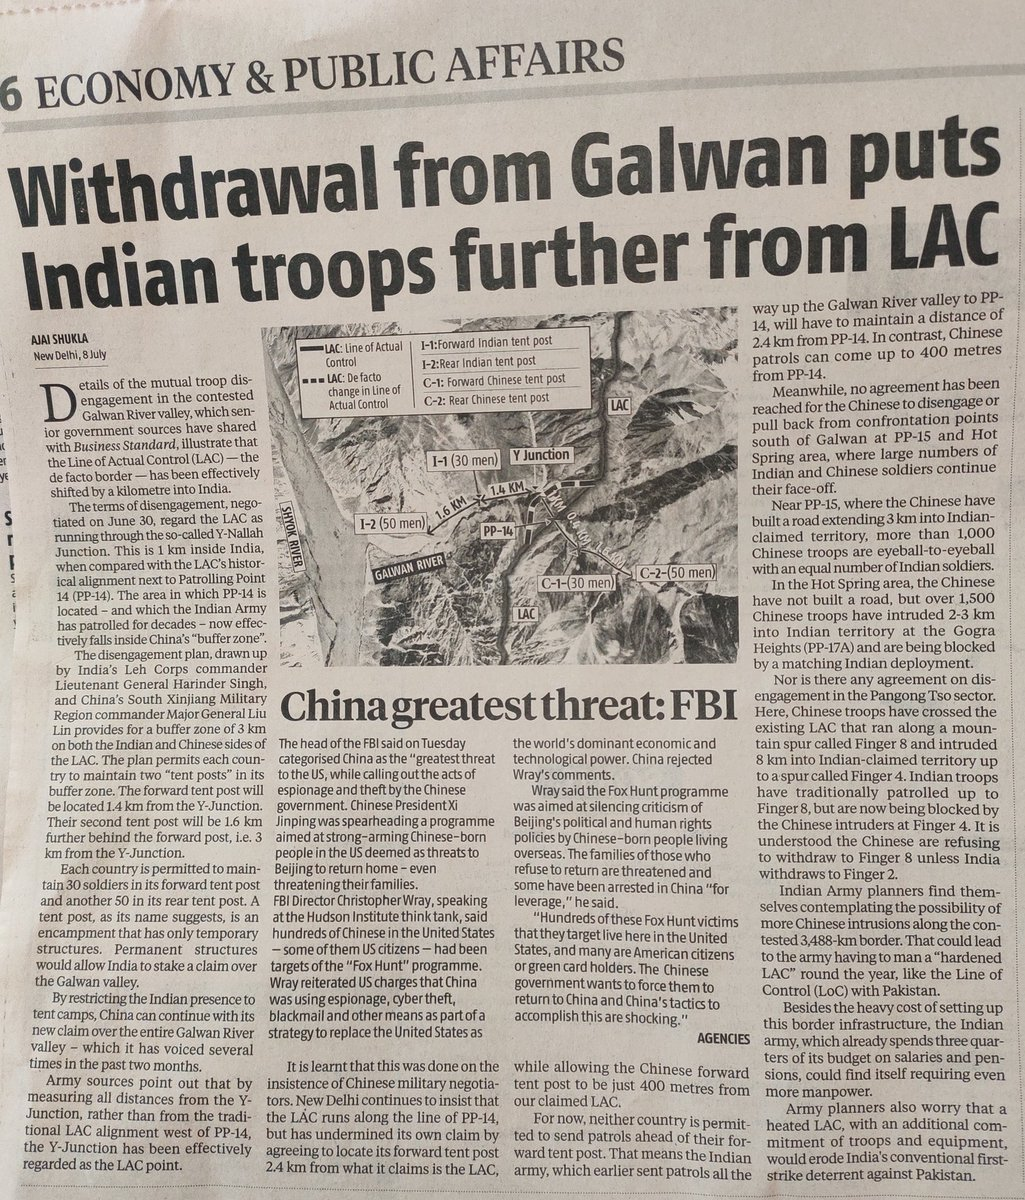 If you believe our visual media, India and the key negotiator has scored a big victory forcing China to withdraw. But reality seems to be different https://t.co/NvxqBbFb42